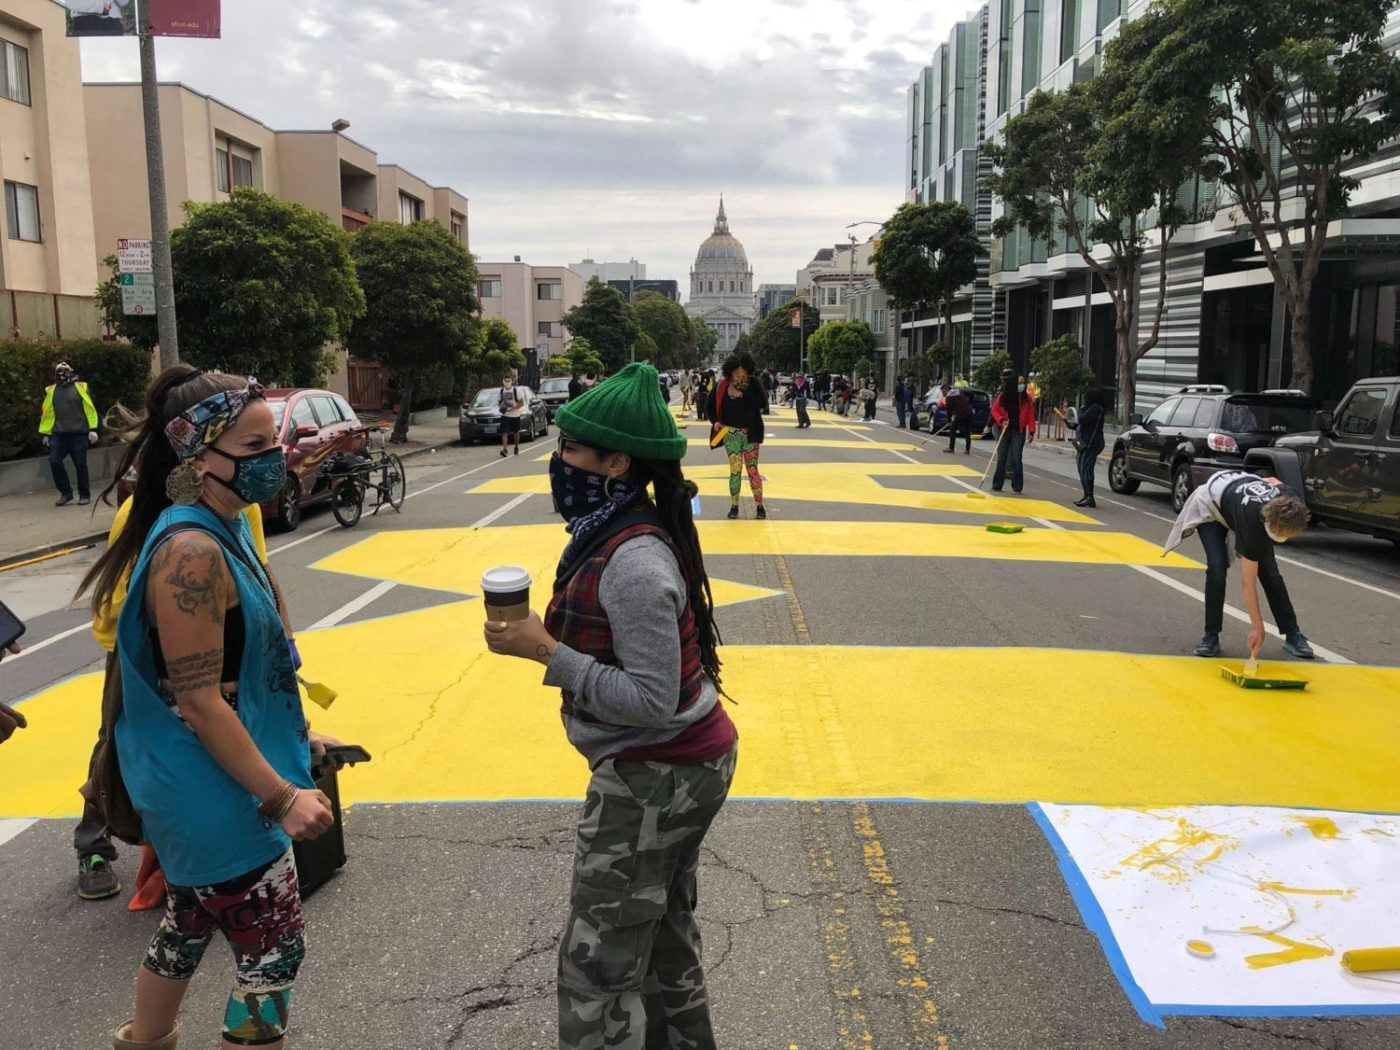 Melonie-Melorra-Green-Project-Level-lead-'Black-Lives-Matter'-700-block-Fulton-street-painting-061220-2-by-Meaghan-Mitchell-Hoodline-1400x1050, 100+ volunteers paint 'Black Lives Matter' in center of San Francisco street, Local News & Views